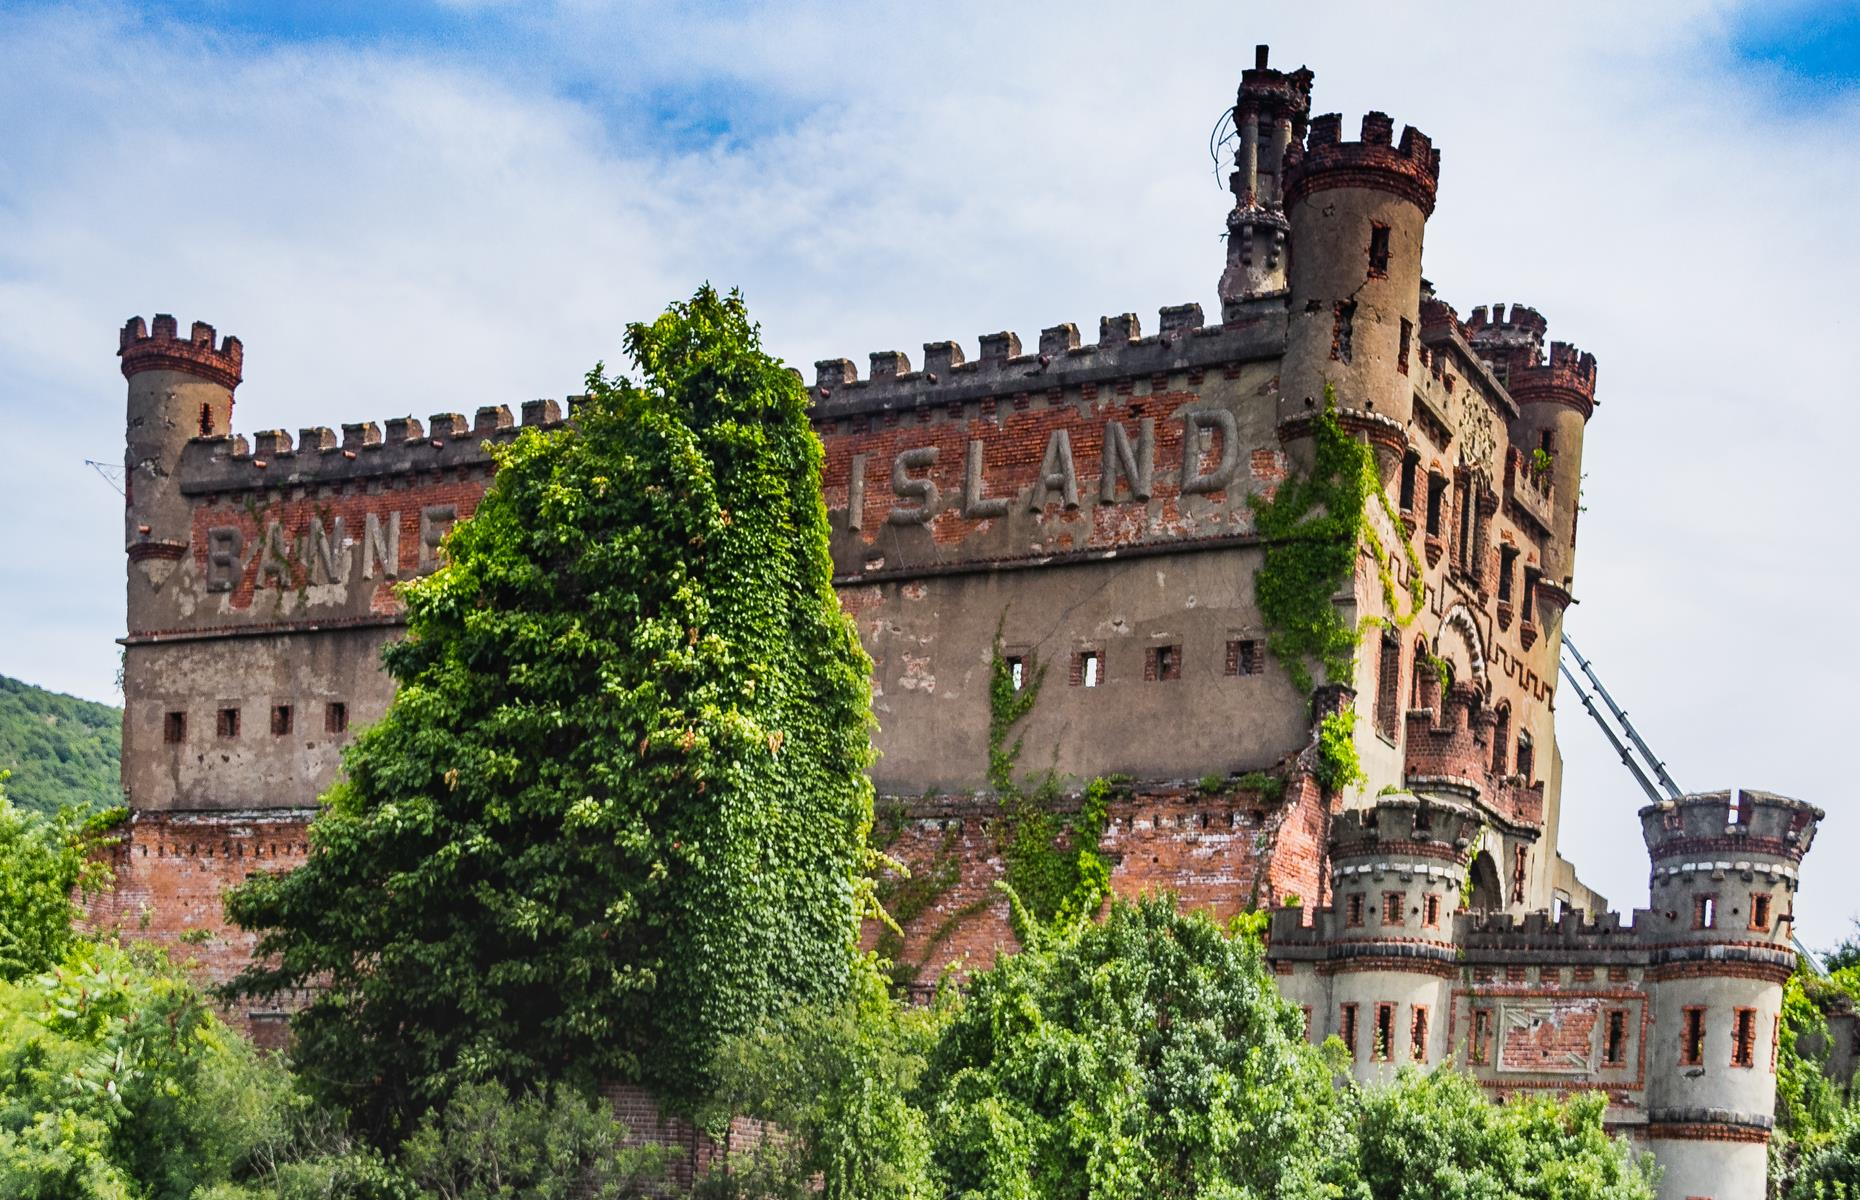 Slide 64 of 101: This turreted European-style castle was built for Scotsman Francis Bannerman VI in the early 20th century. Bannerman owned a weaponry business and intended to use the elaborate structure as a storage facility.